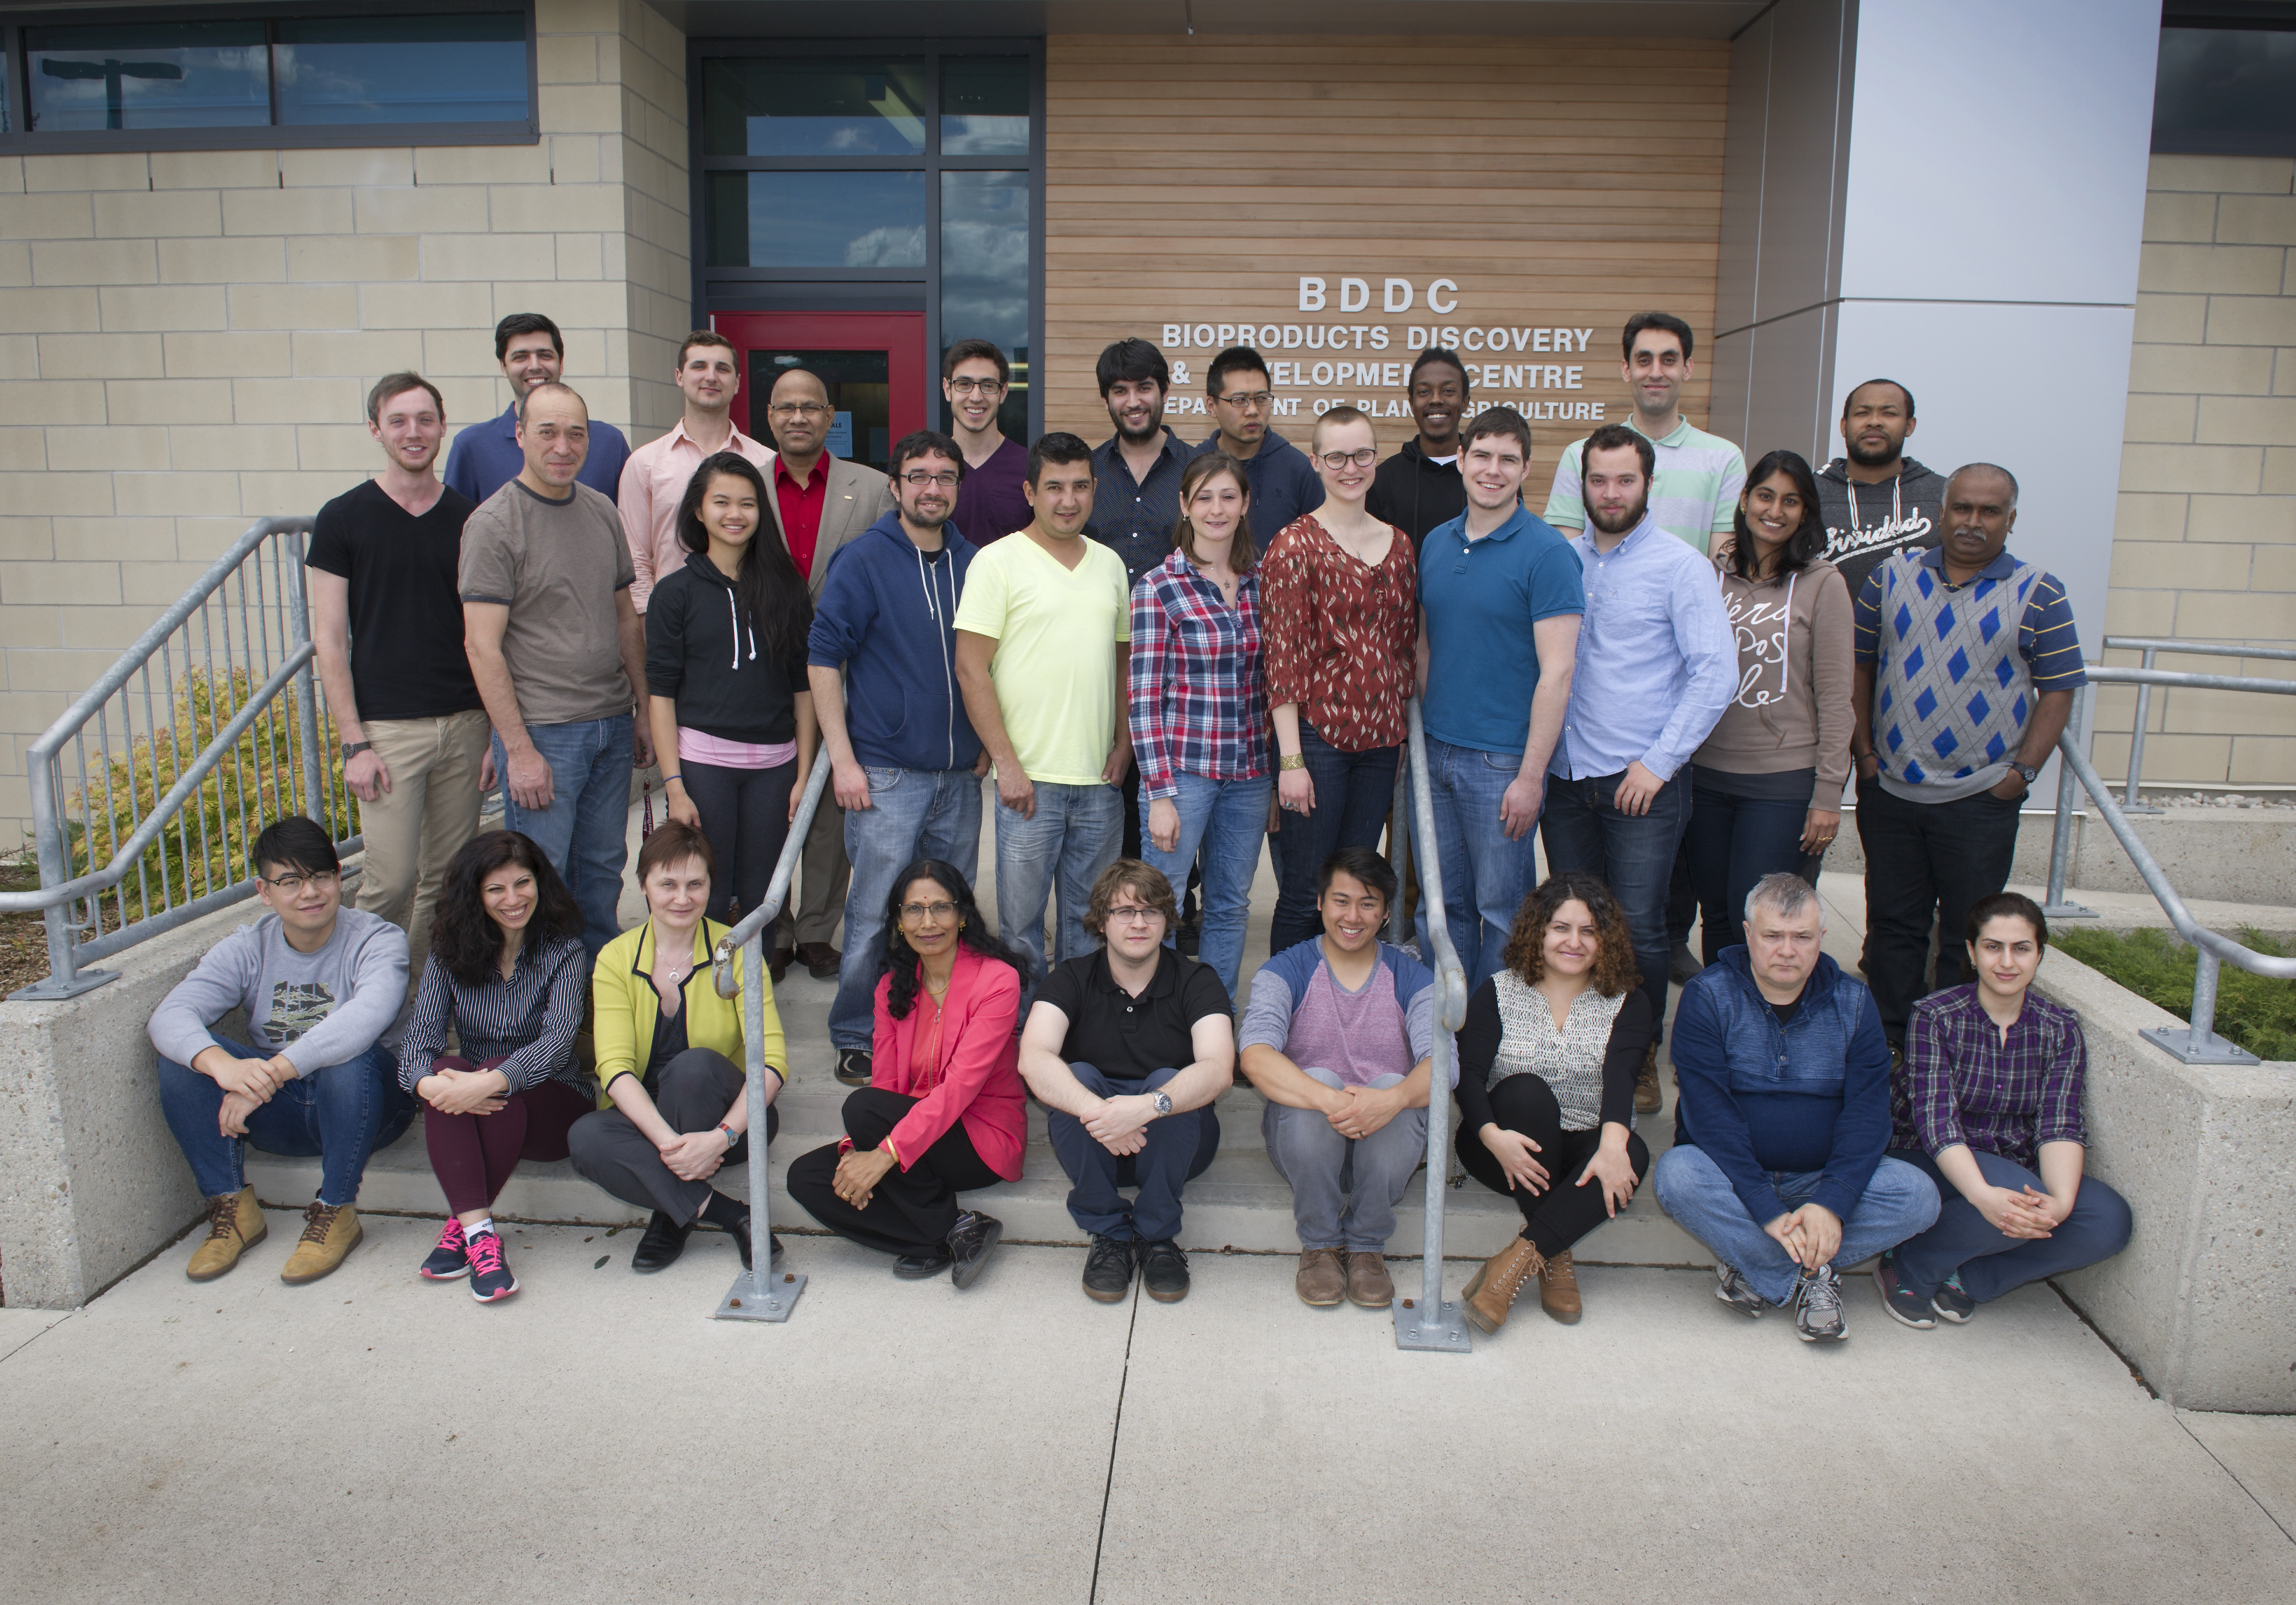 Group photo of the bioproducts discovery and development centre personnel